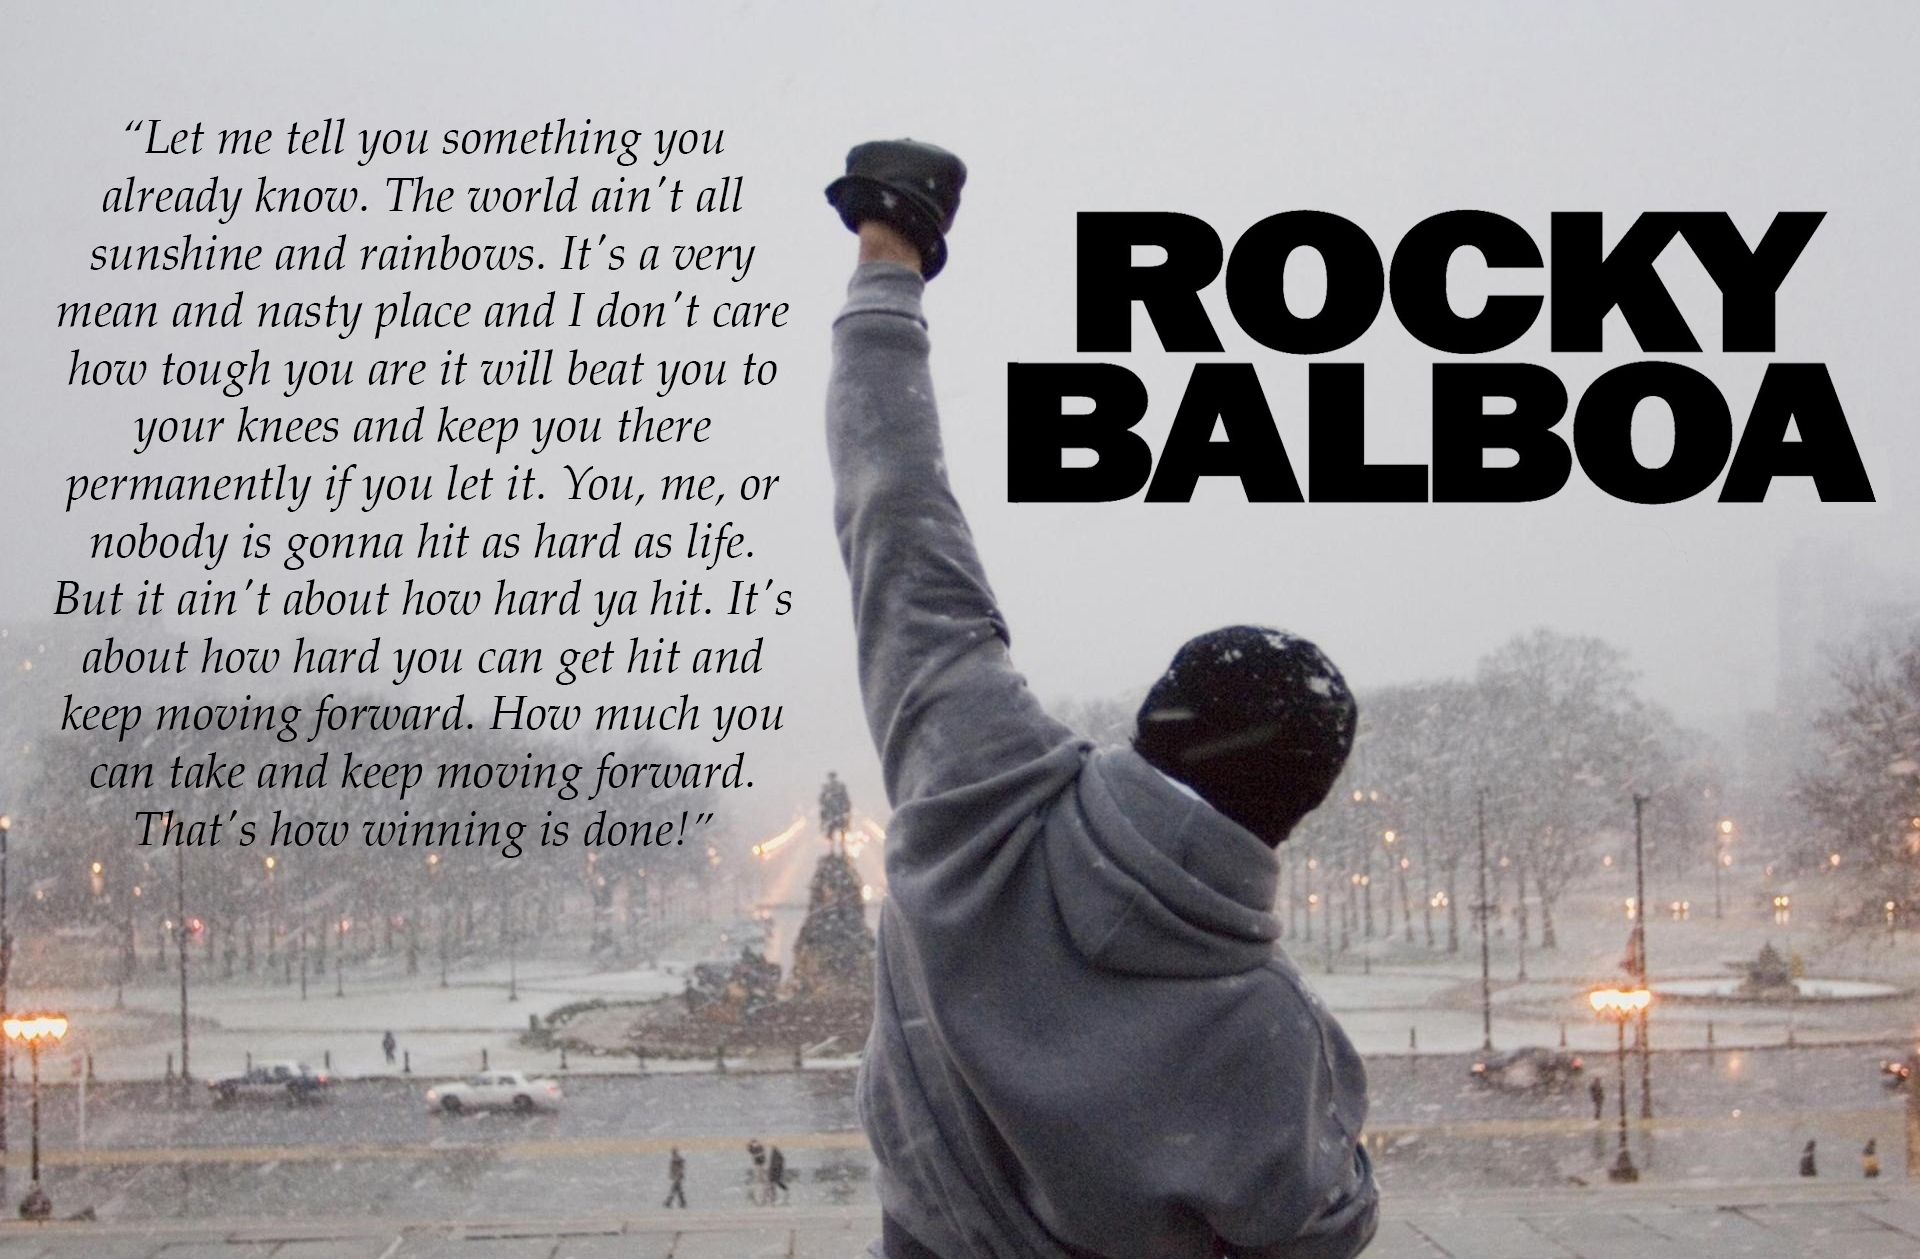 Rocky Balboa Quote New Poster Or Canvas Print